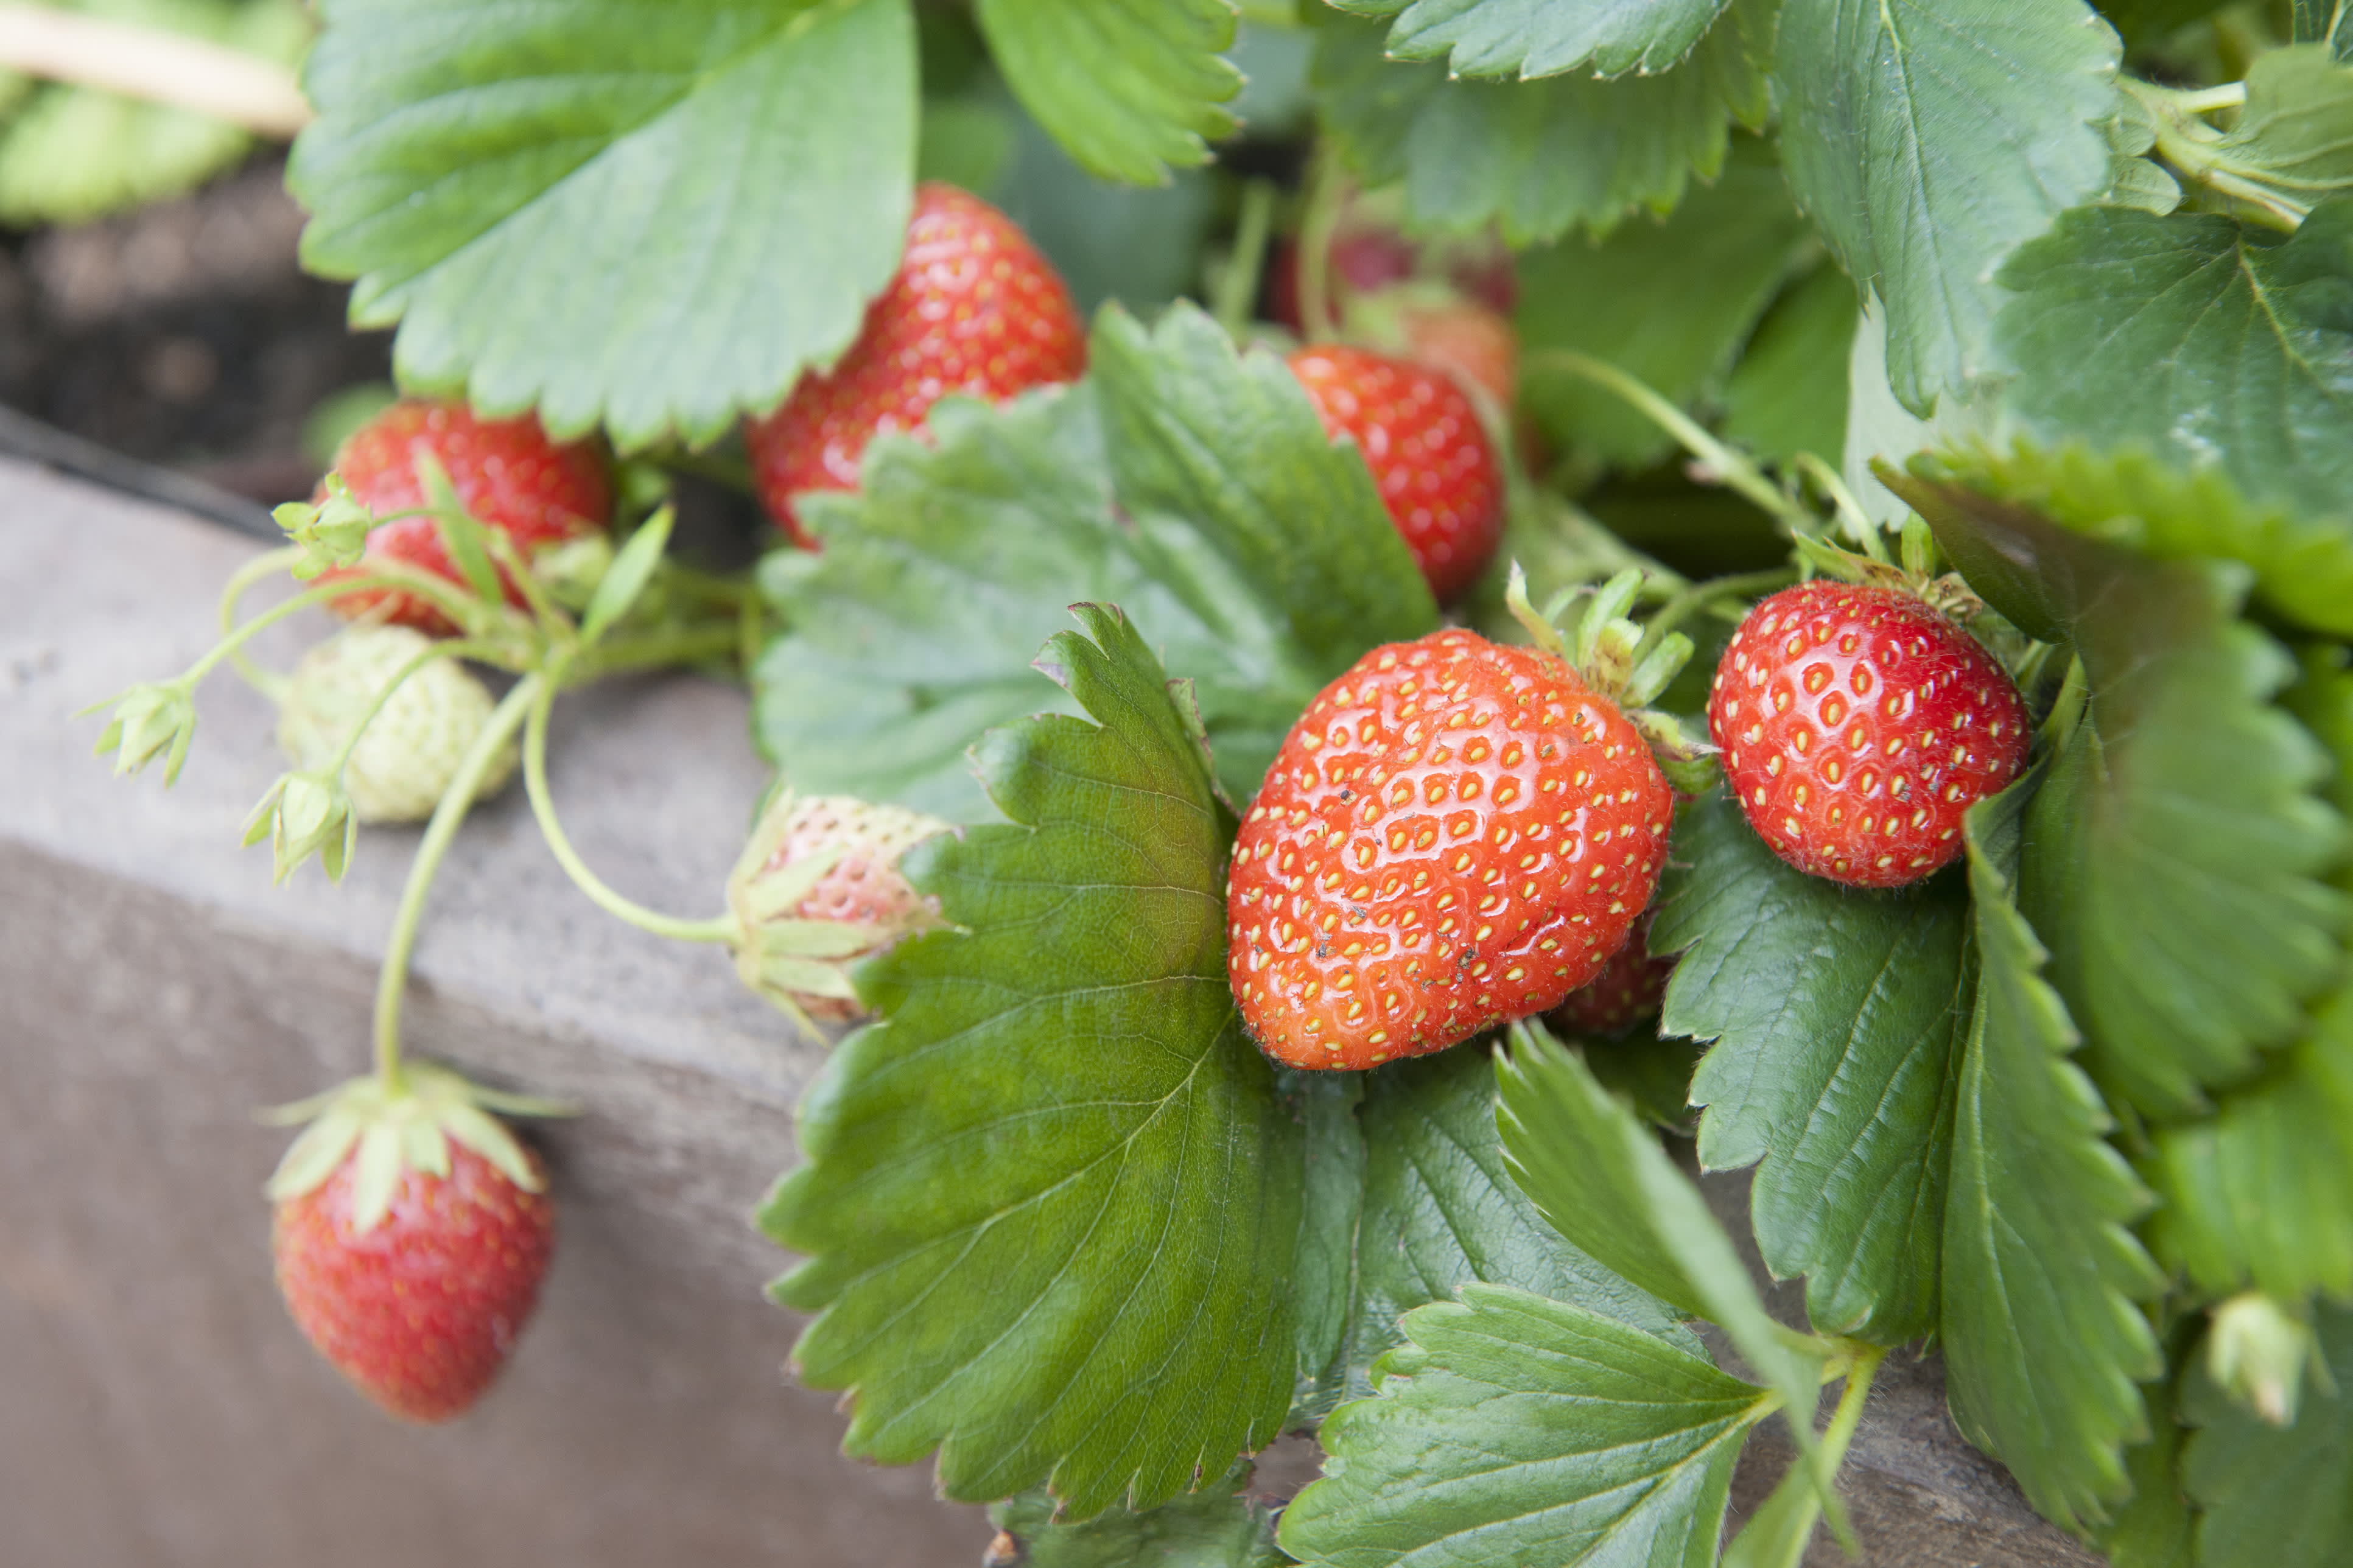 Robots could soon be picking your strawberries